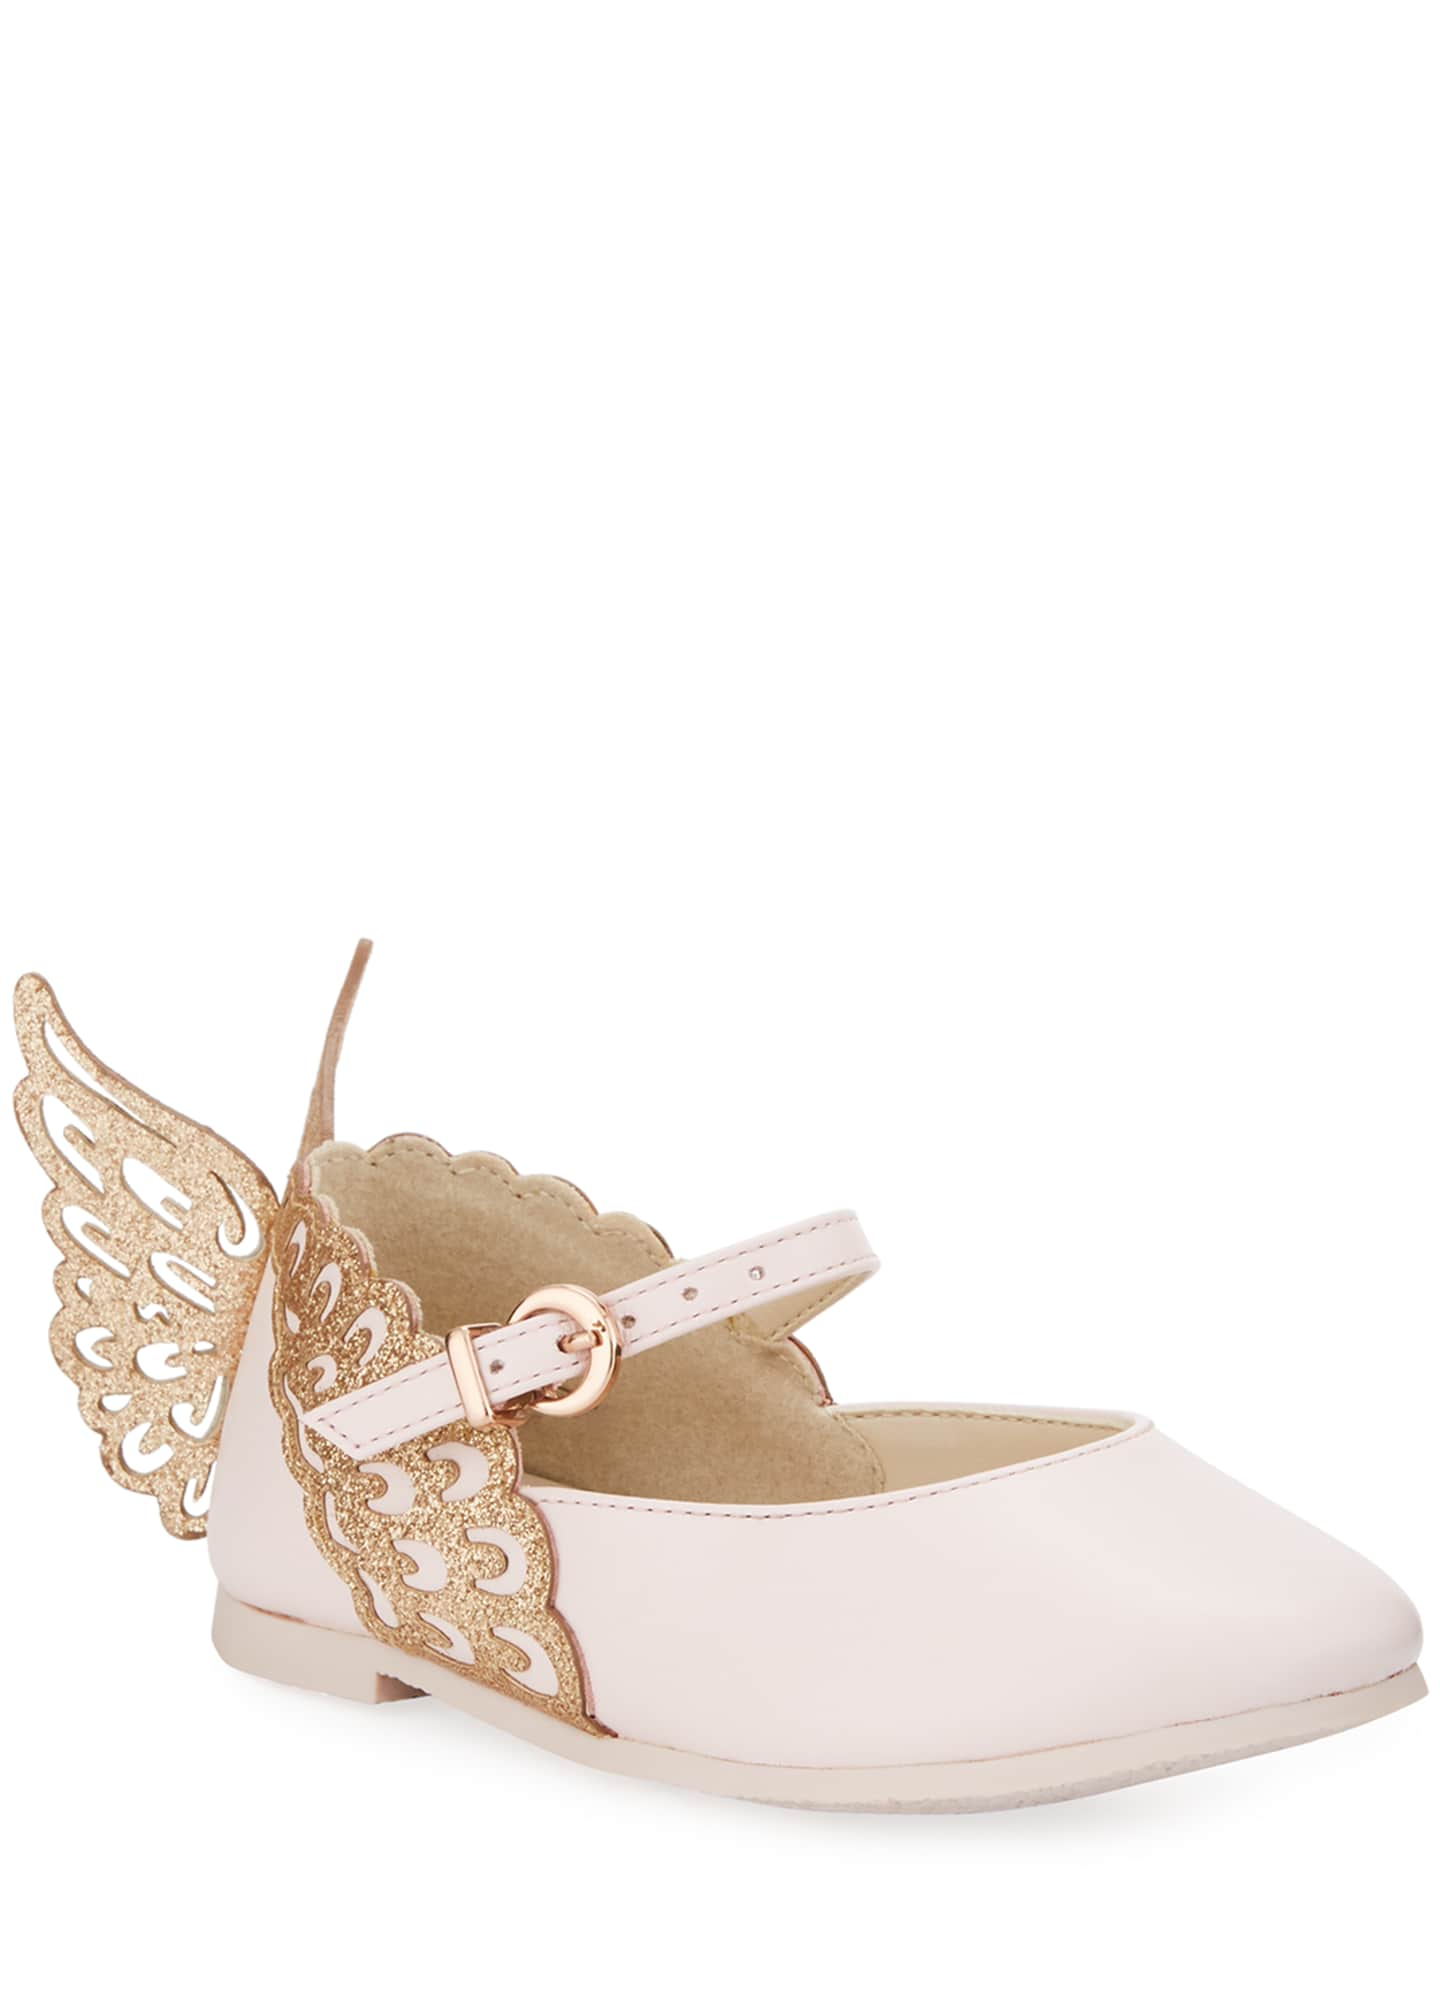 Sophia Webster Evangeline Leather Butterfly-Wing Flats, Toddler/Kid